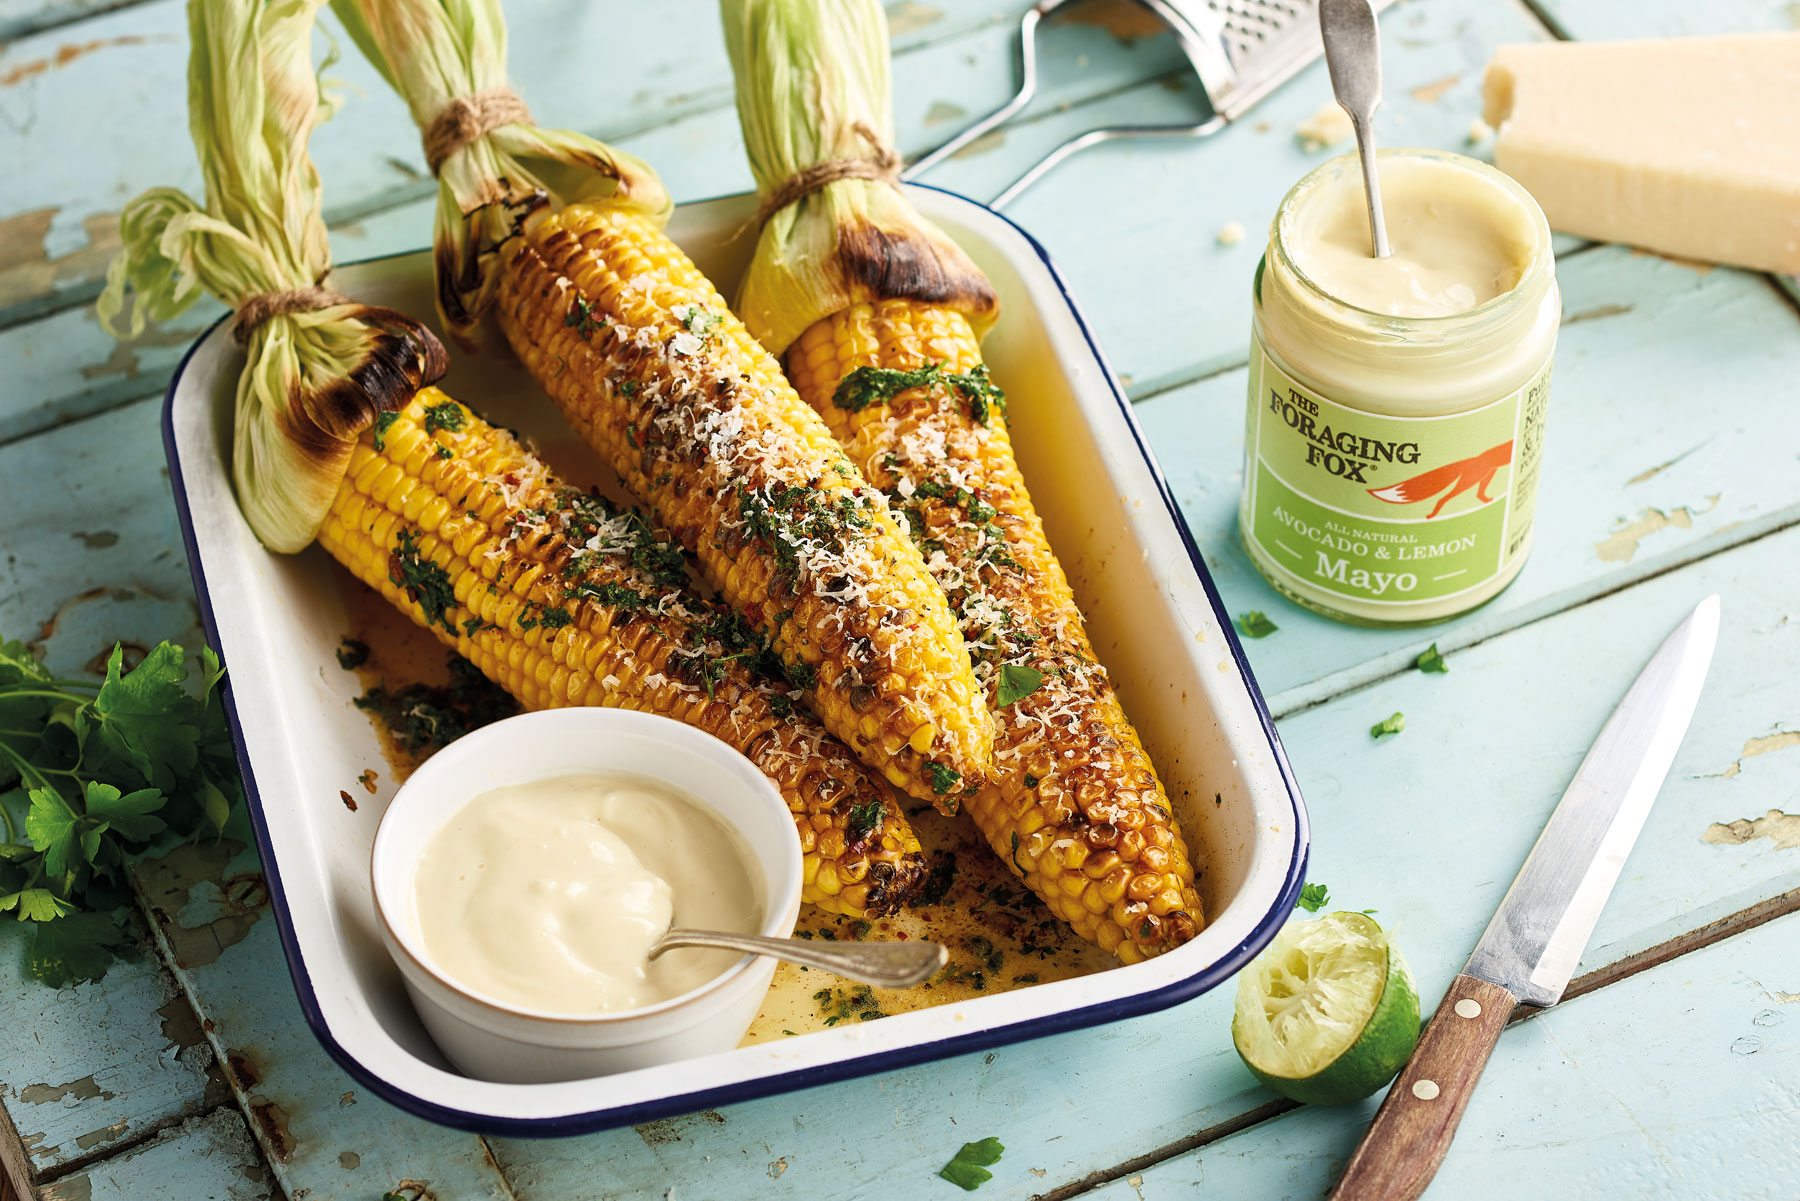 Charred sweetcorn with mayo